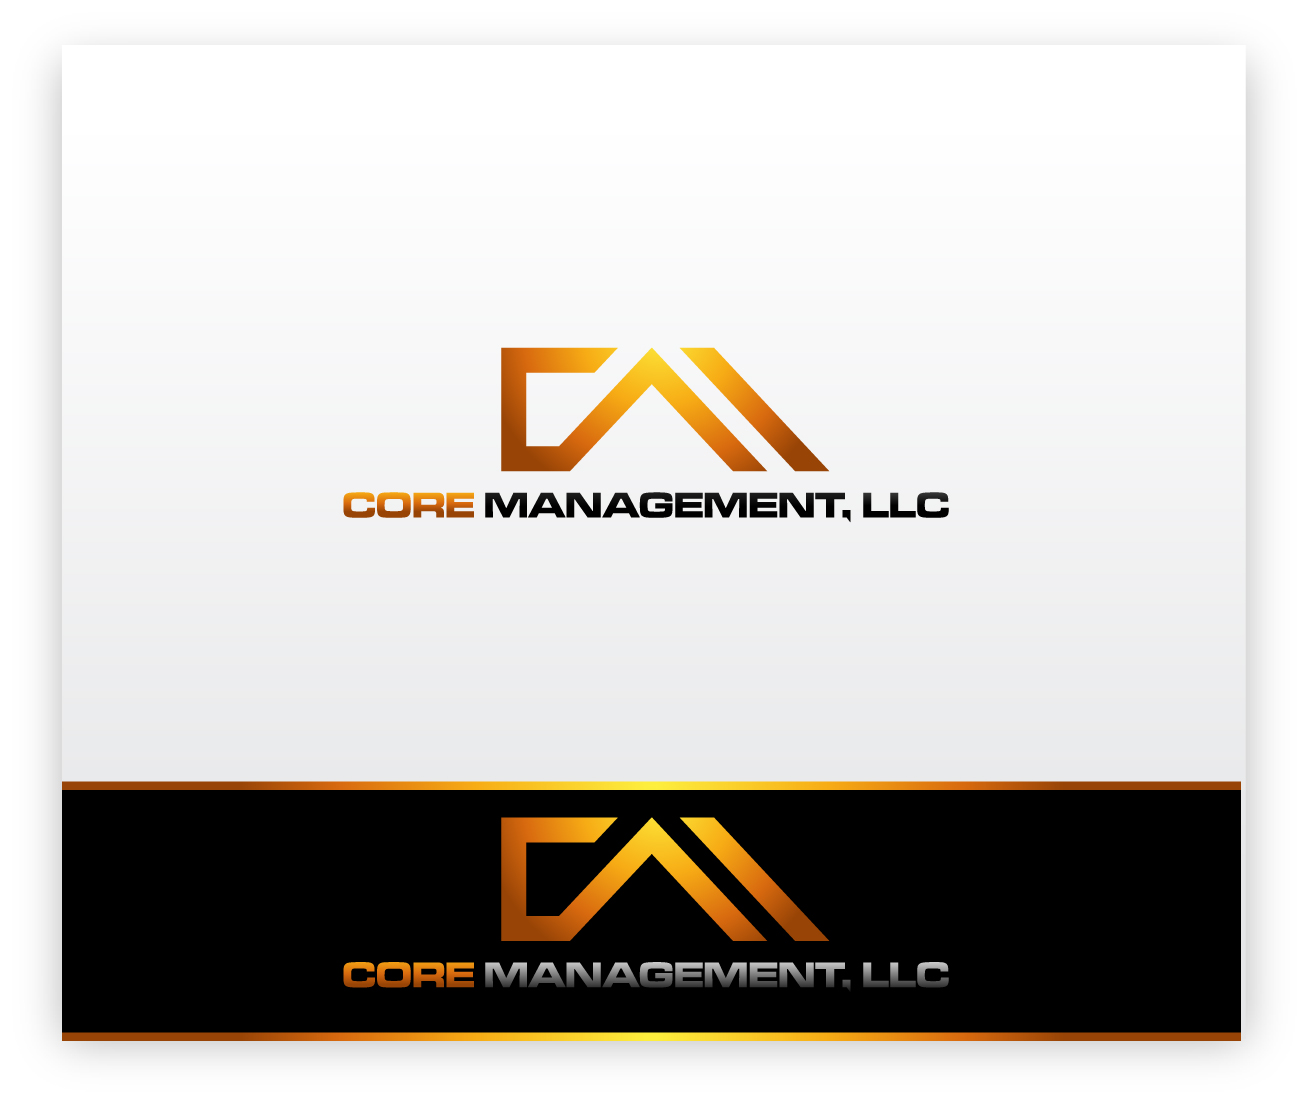 Logo Design by zoiDesign - Entry No. 61 in the Logo Design Contest Creative Logo Design for CORE Management, LLC.